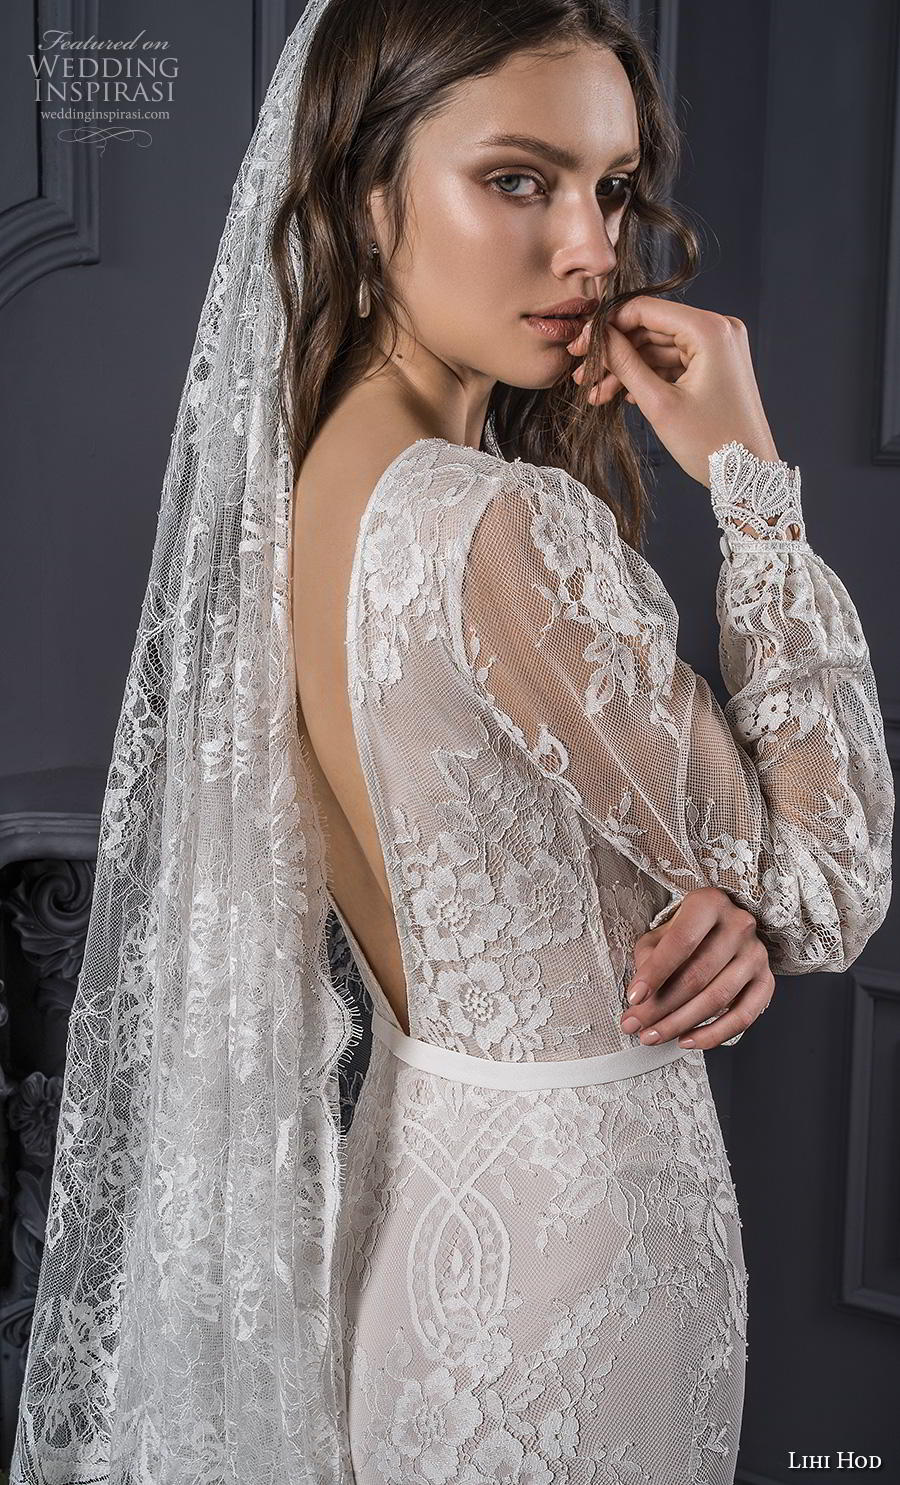 lihi hod spring 2020 bridal long bishop sleeves bateau neckline full embellishment bohemian sheath wedding dress backless low v back short train (3) zbv